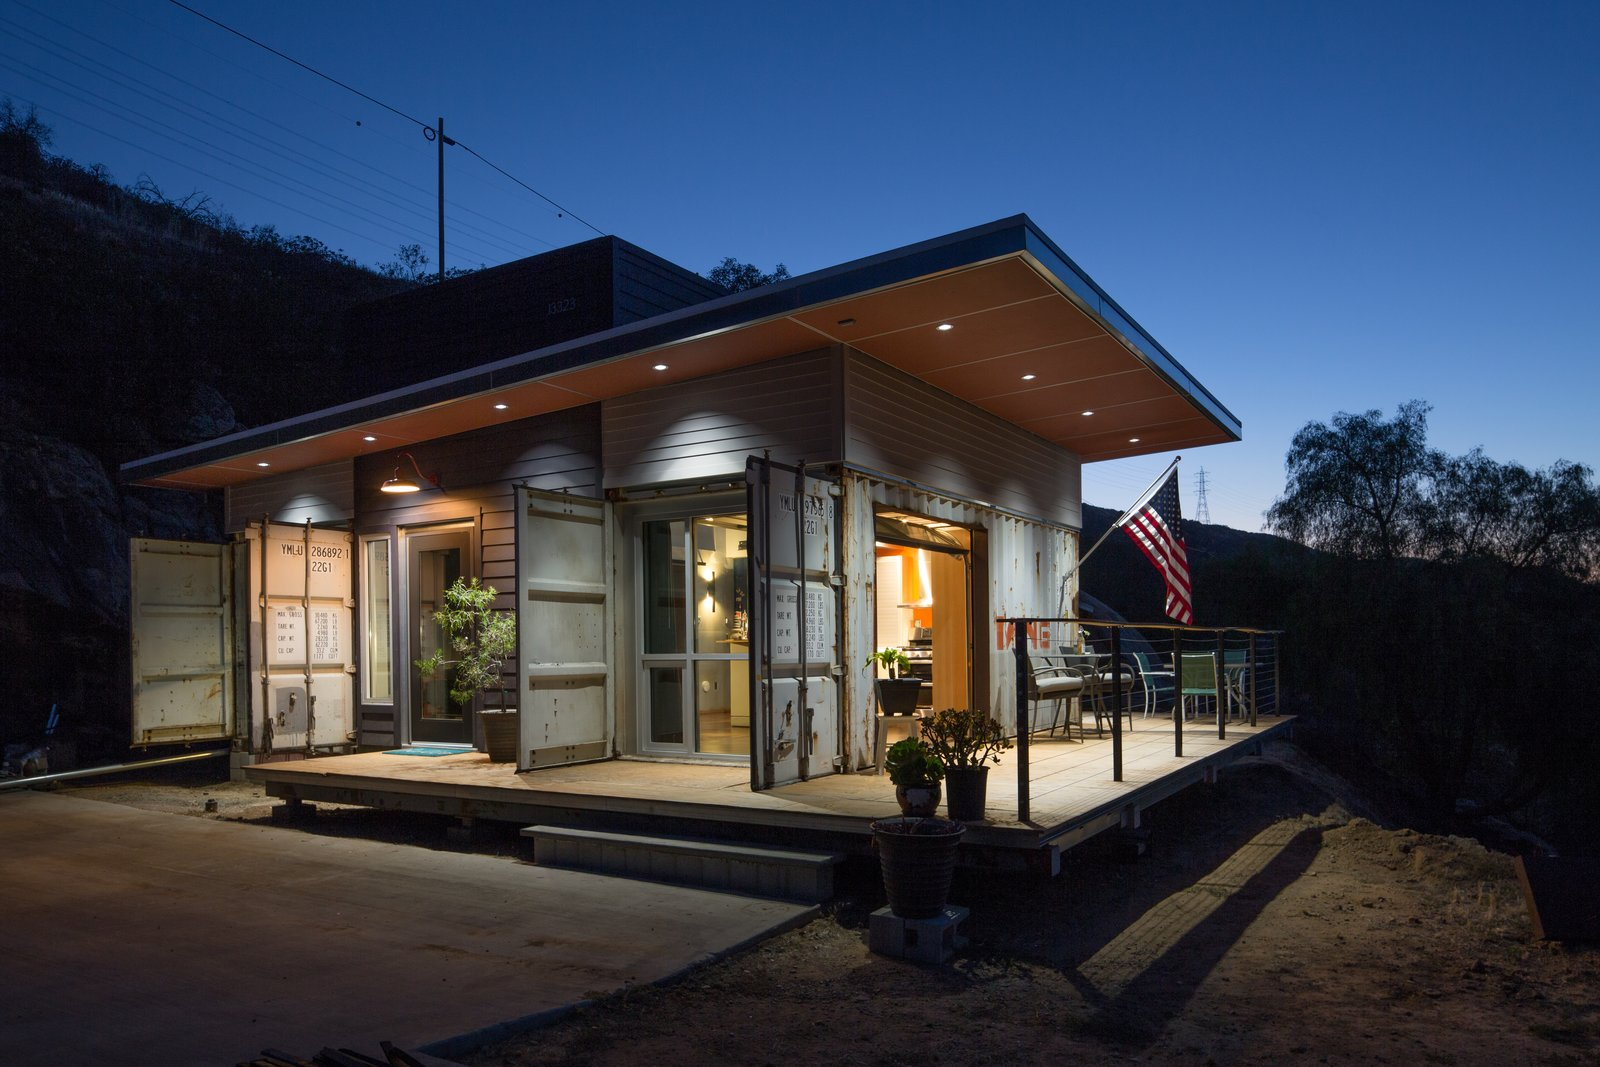 Mike McConkey, a superintendent for a general contractor, tasked Chris Bittner of OBR Architecture with designing an environmentally sensitive home for he and his wife in San Diego County. Utilizing three shipping containers and a bevy of cost-effective appliances, they managed to limit the budget to $160,000. Tagged: Exterior, House, Metal Siding Material, and Flat RoofLine.  Shipping Container by Philip Slawson from Modern Homes In and Around San Diego